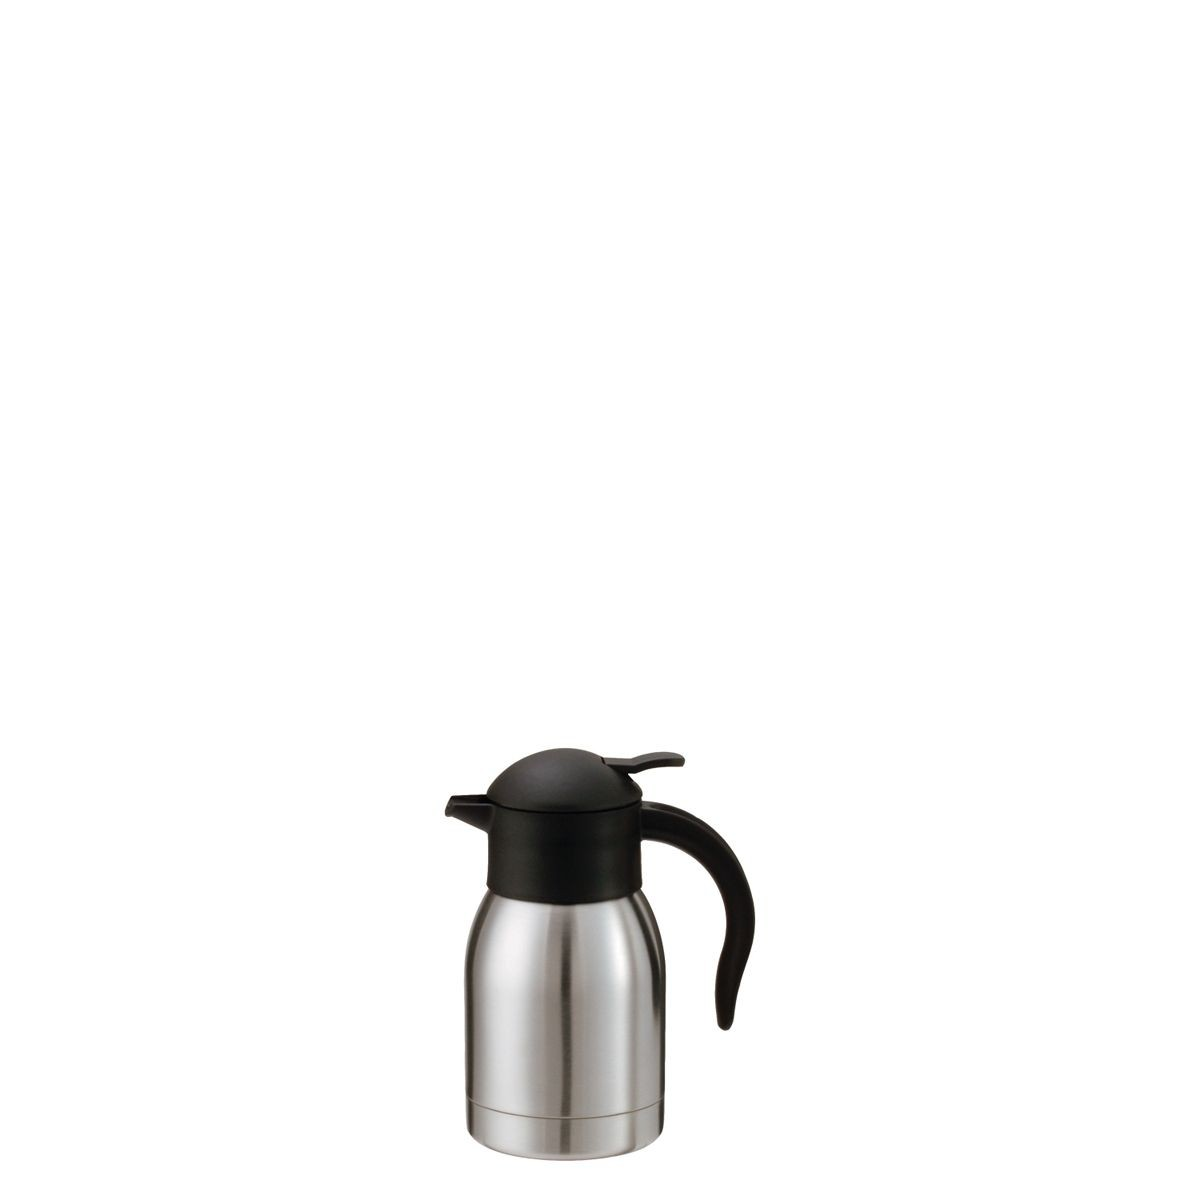 Service Ideas Sj60ss Steelvac Stainless Vacuum Carafe With Push On Lid 0 6 Liter